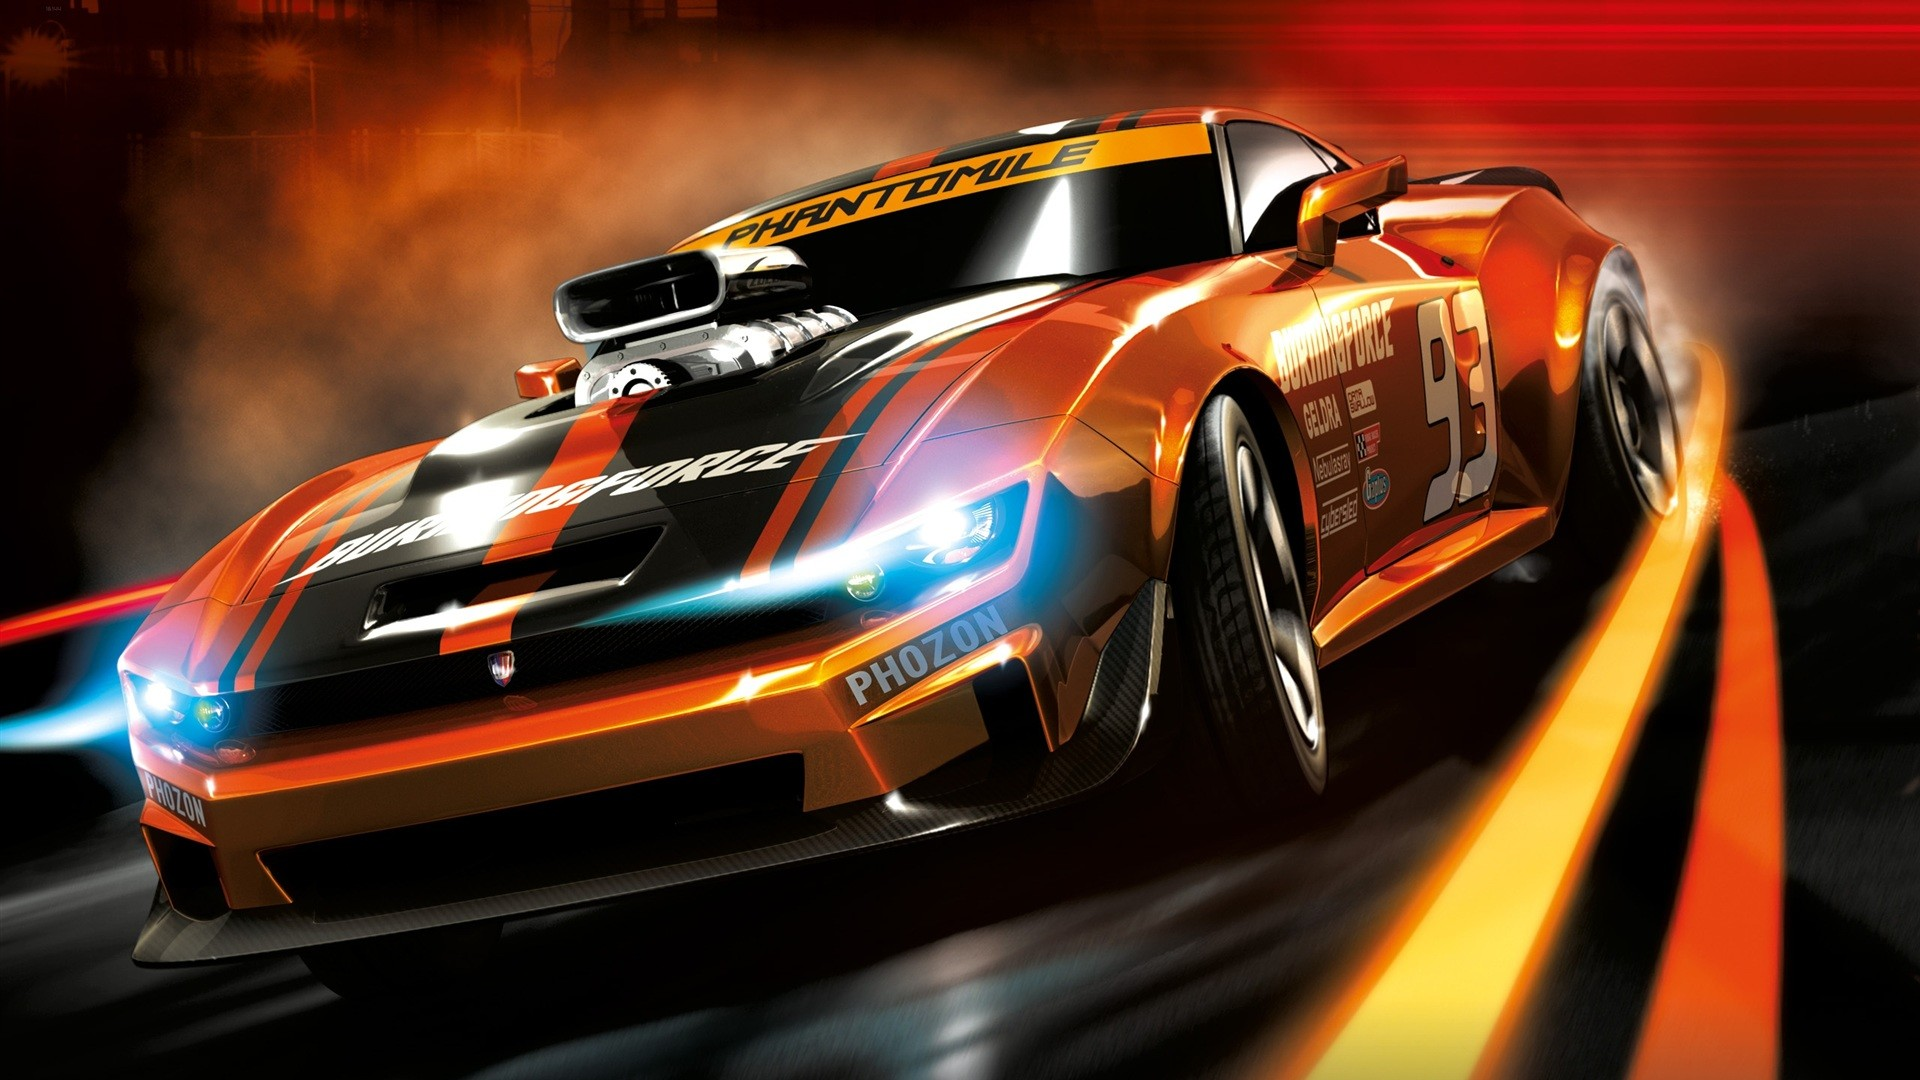 Res: 1920x1080, Car Racing Wallpaper Cars Pictures Cool Wallpapers Cool Race Car ... - HD  Wallpapers